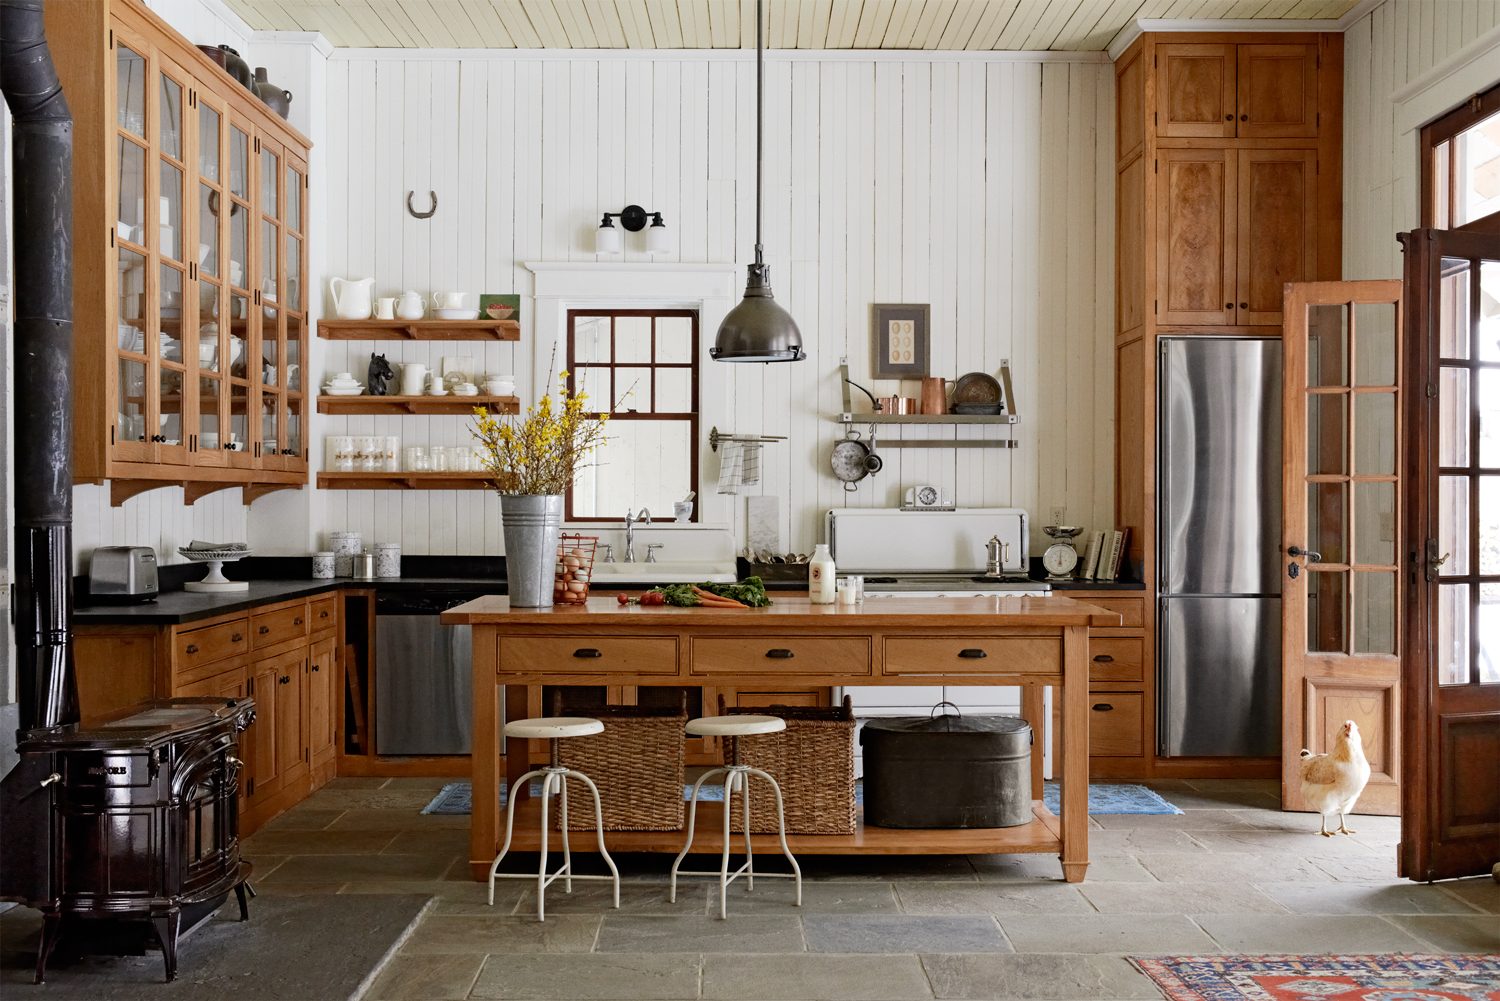 8 Ways To Add Authentic Farmhouse Style To Your Kitchen Jeff And Nancy Wilkinson Kitchen